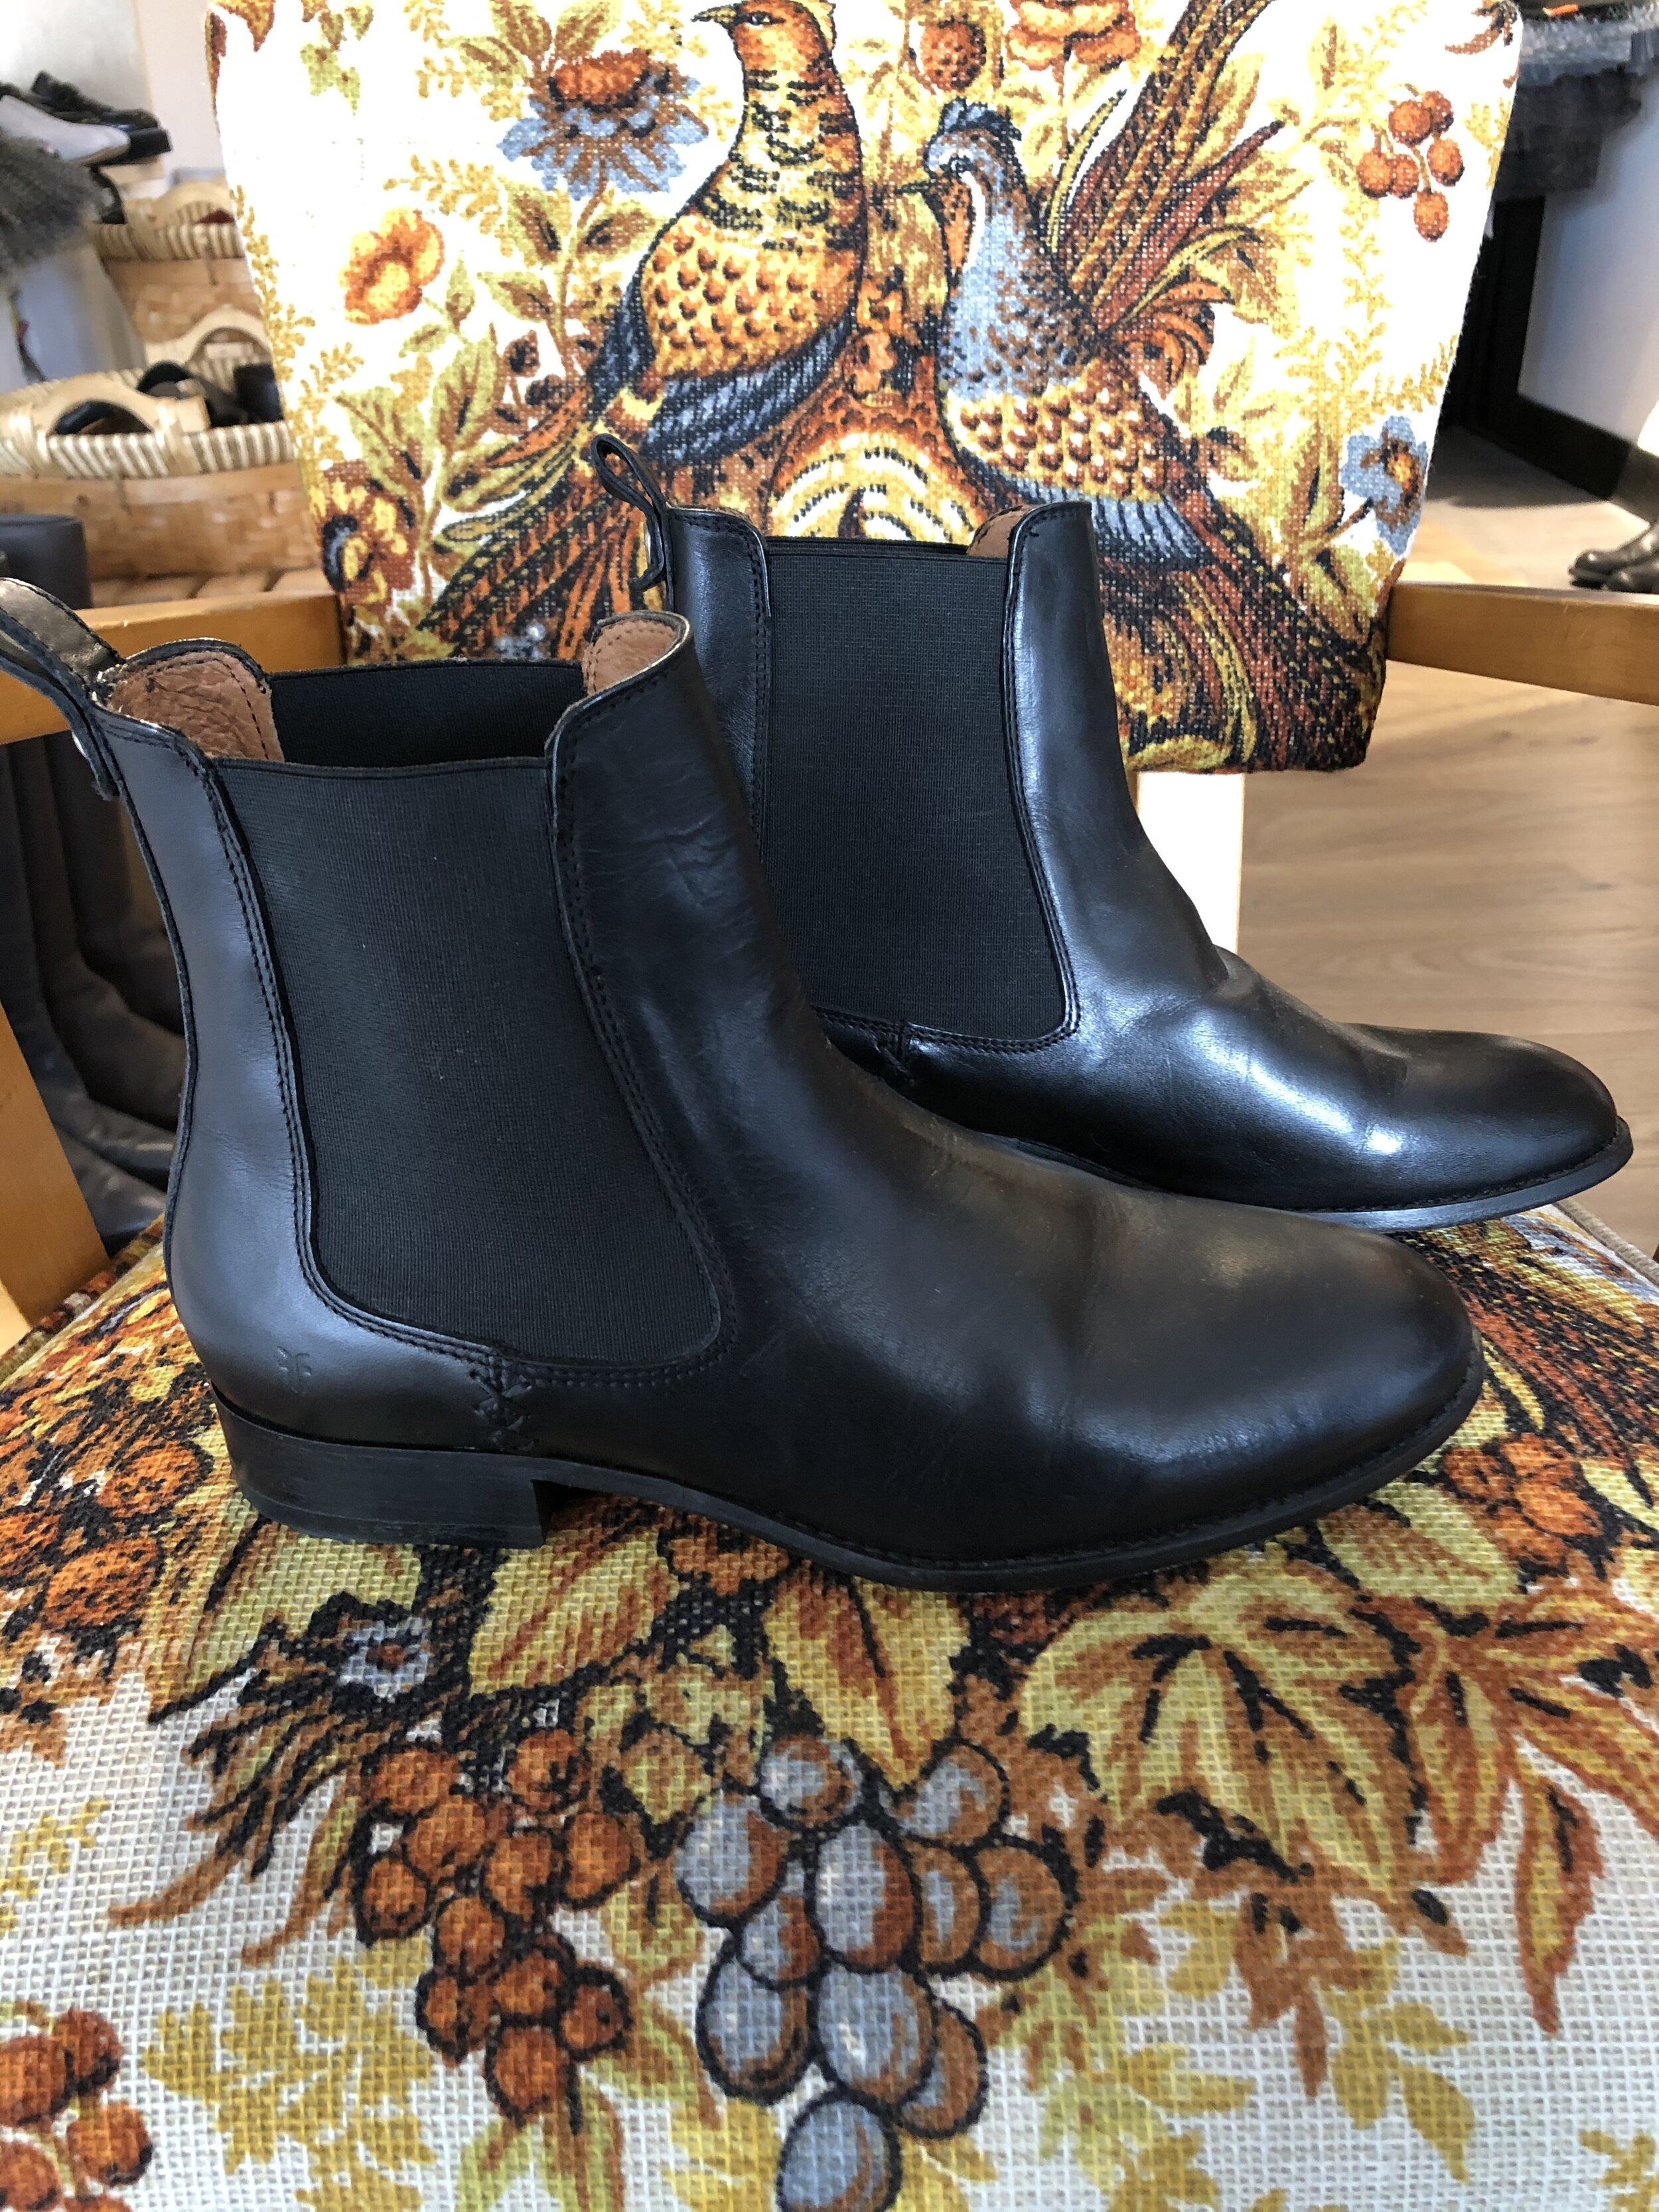 Frye boots; Size 9, $125